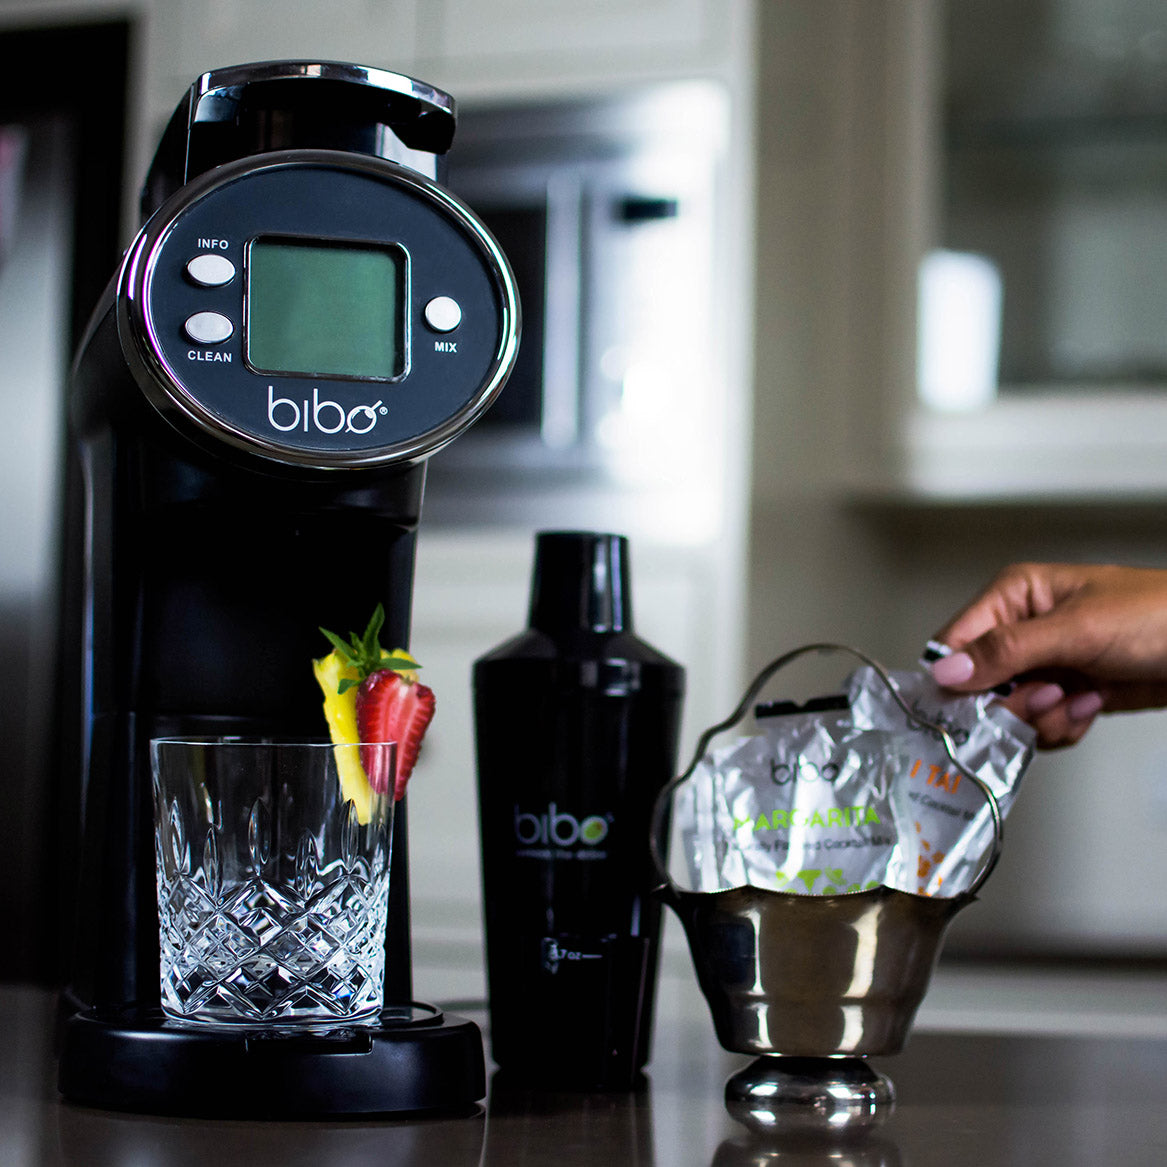 The Bibo Barmaid System Makes the Top 10 of the Wiki of 2018's Best Margarita Machines